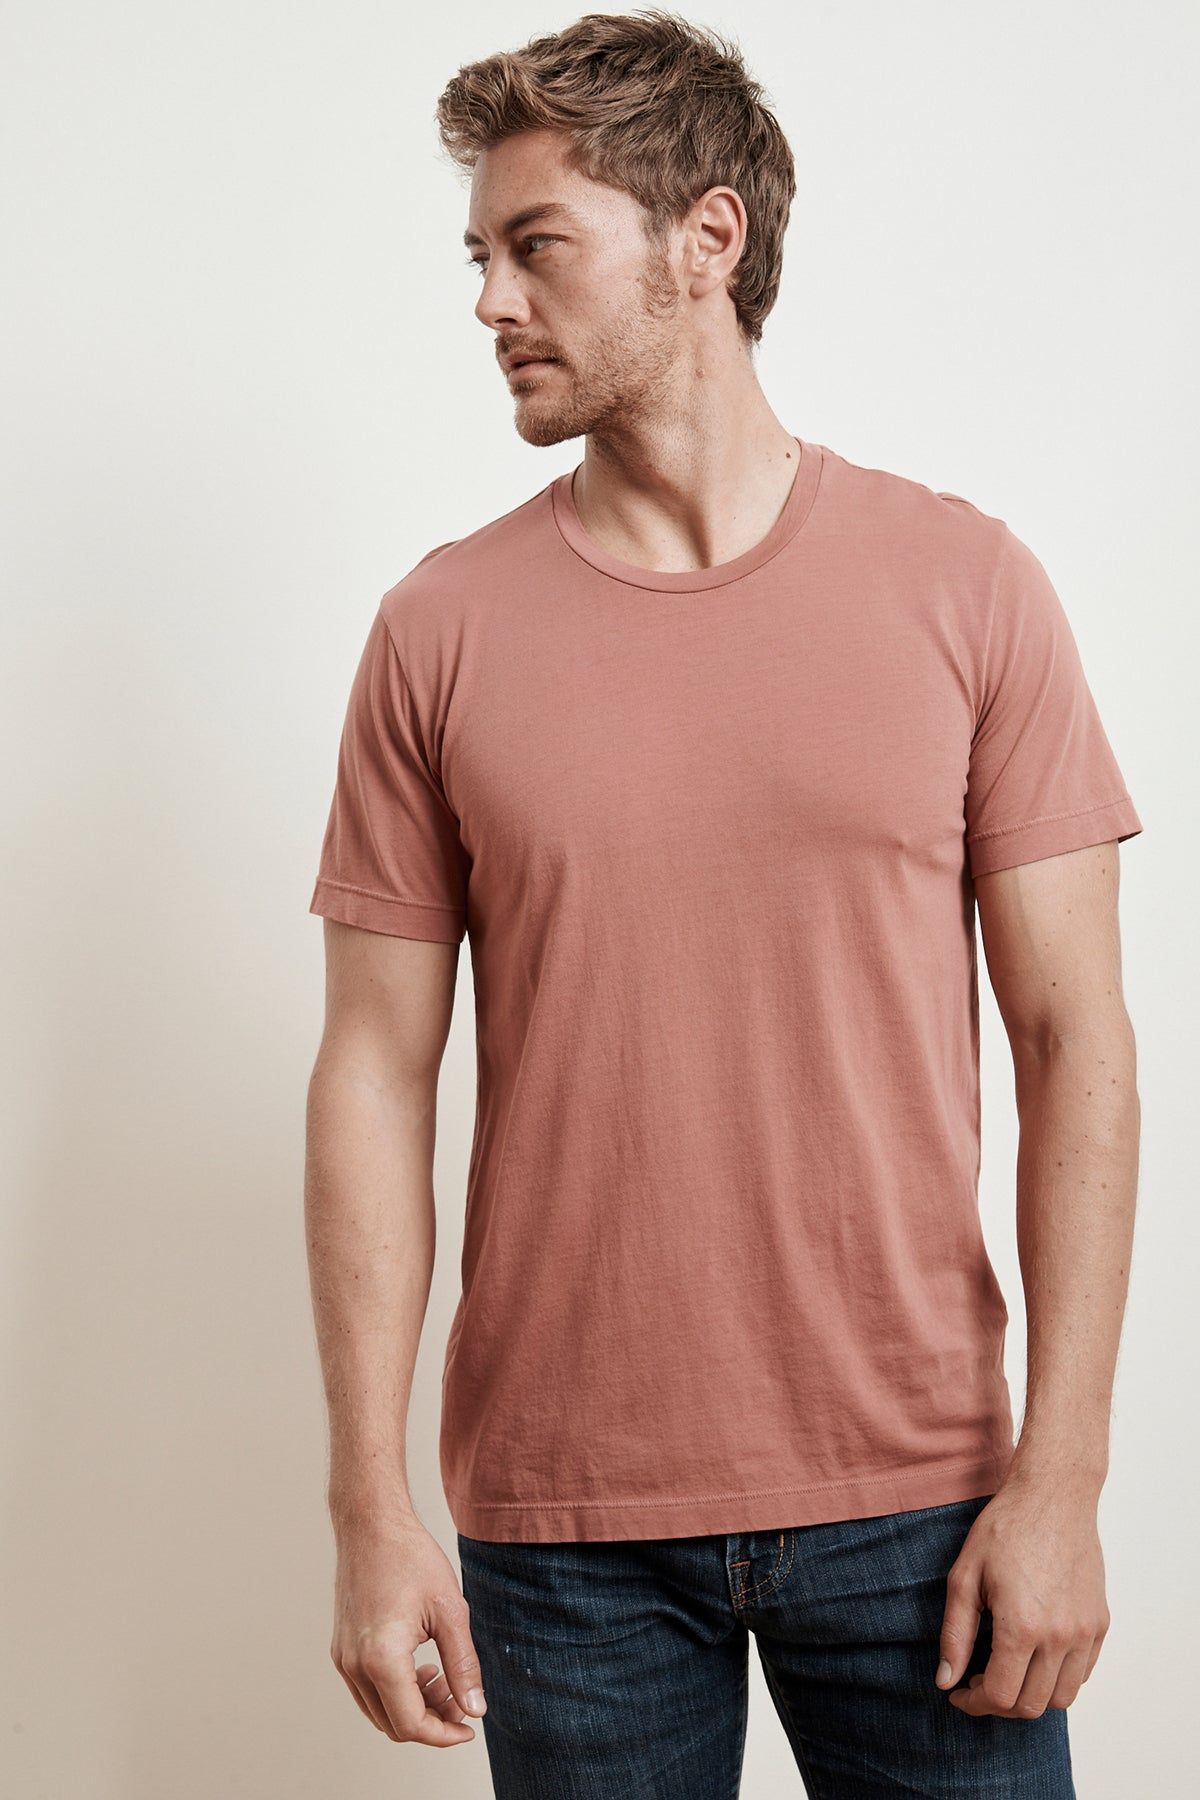 HOWARD WHISPER CLASSIC CREW NECK TEE